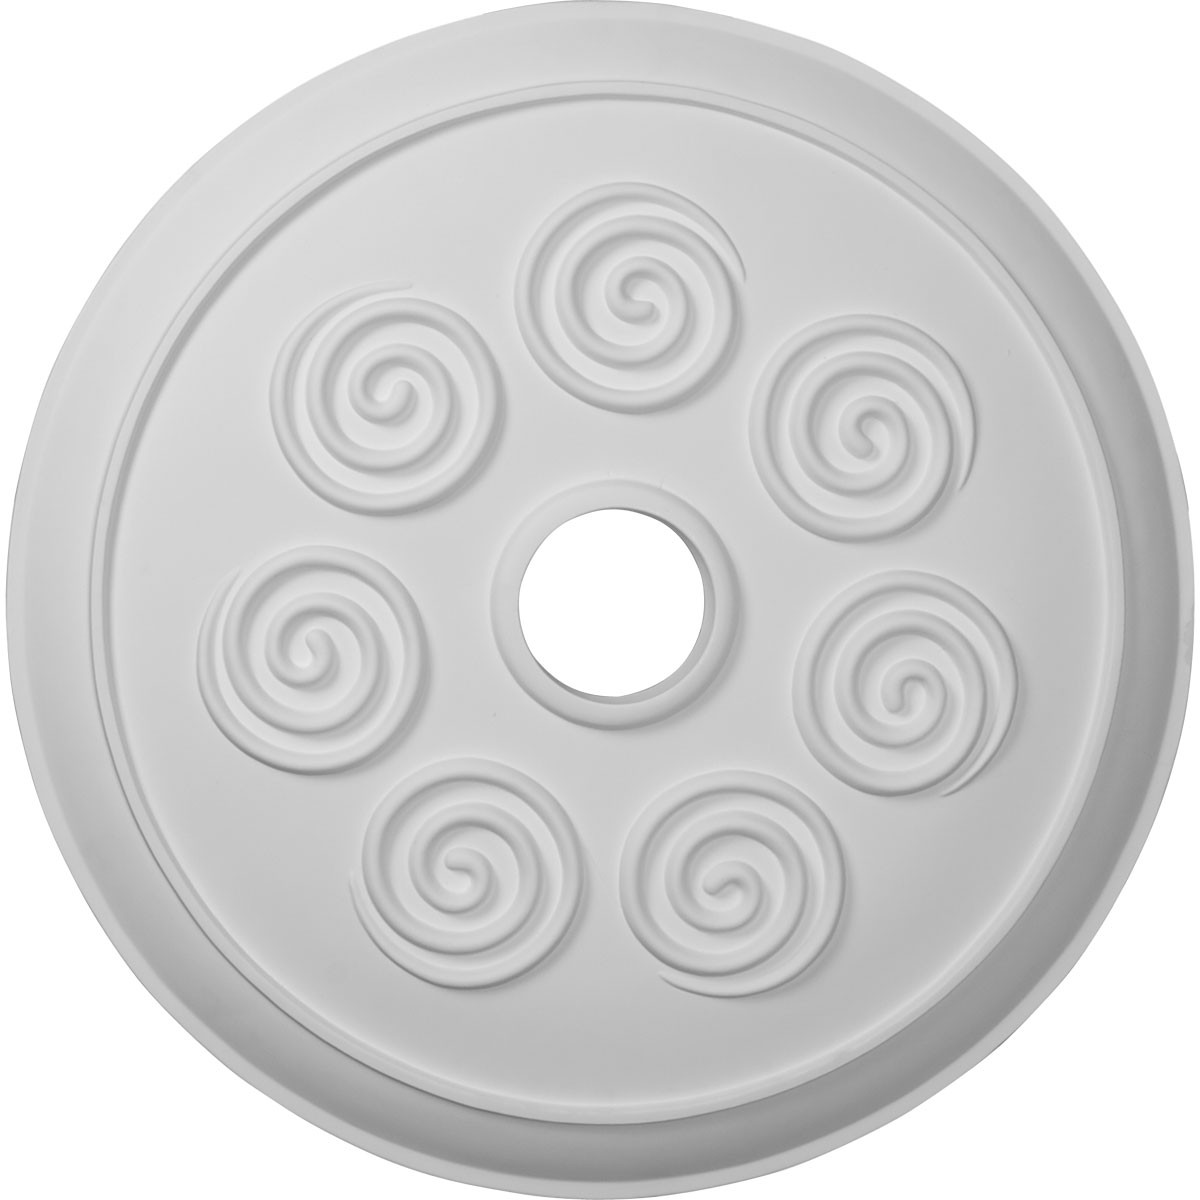 """EM-CM25SP - 25 1/4""""OD x 4""""ID x 2""""P Spiral Ceiling Medallion (Fits Canopies up to 4"""")"""